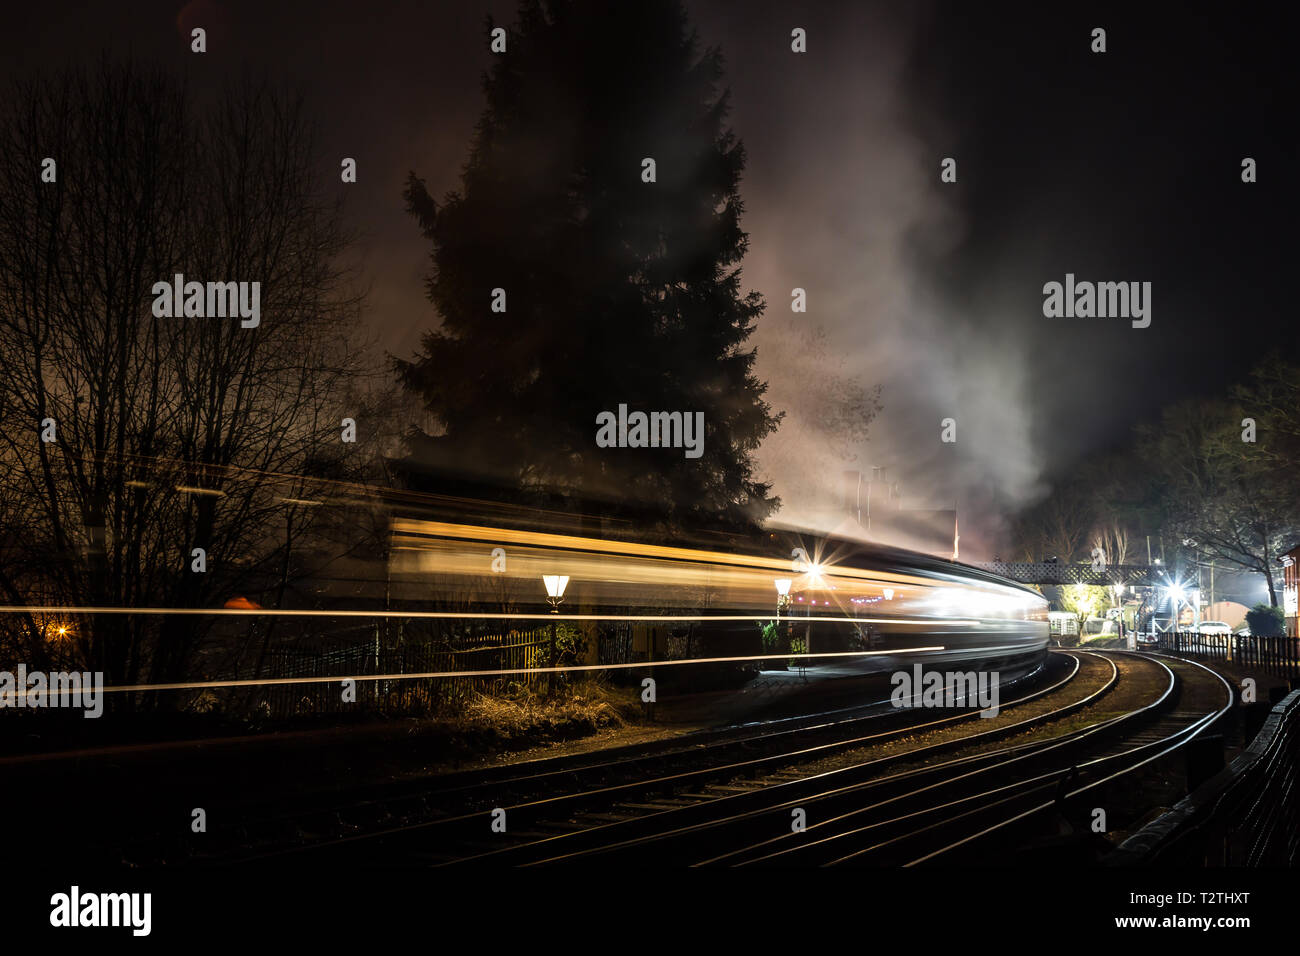 Atmospheric, moody night time capture of moving steam train carriages travelling through vintage railway station at night. Fast motion blur effect. - Stock Image